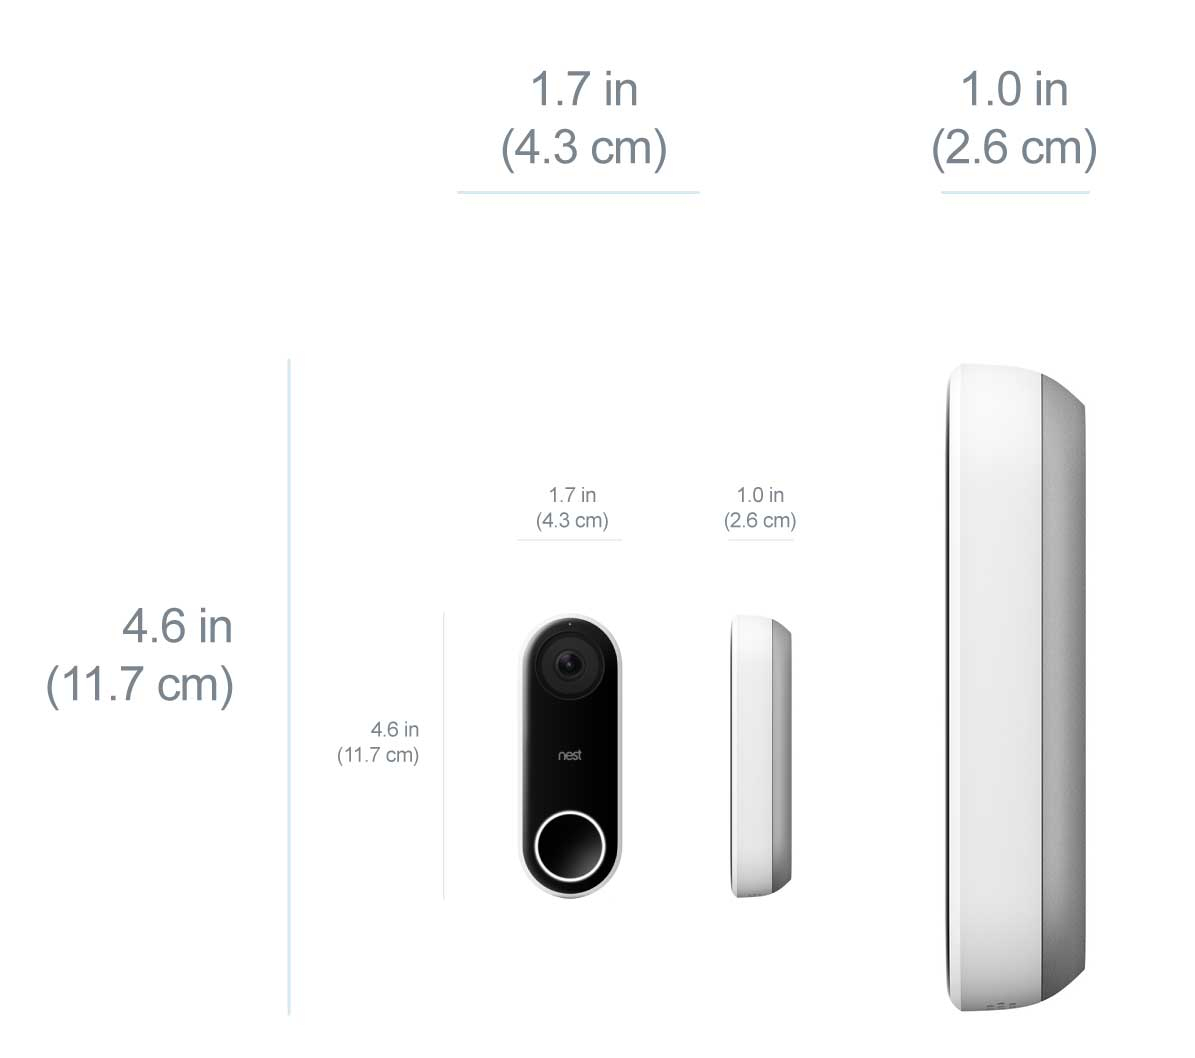 Learn About The Nest Hello Video Doorbell Before You Buy - Nest E Wiring Diagram, Ob